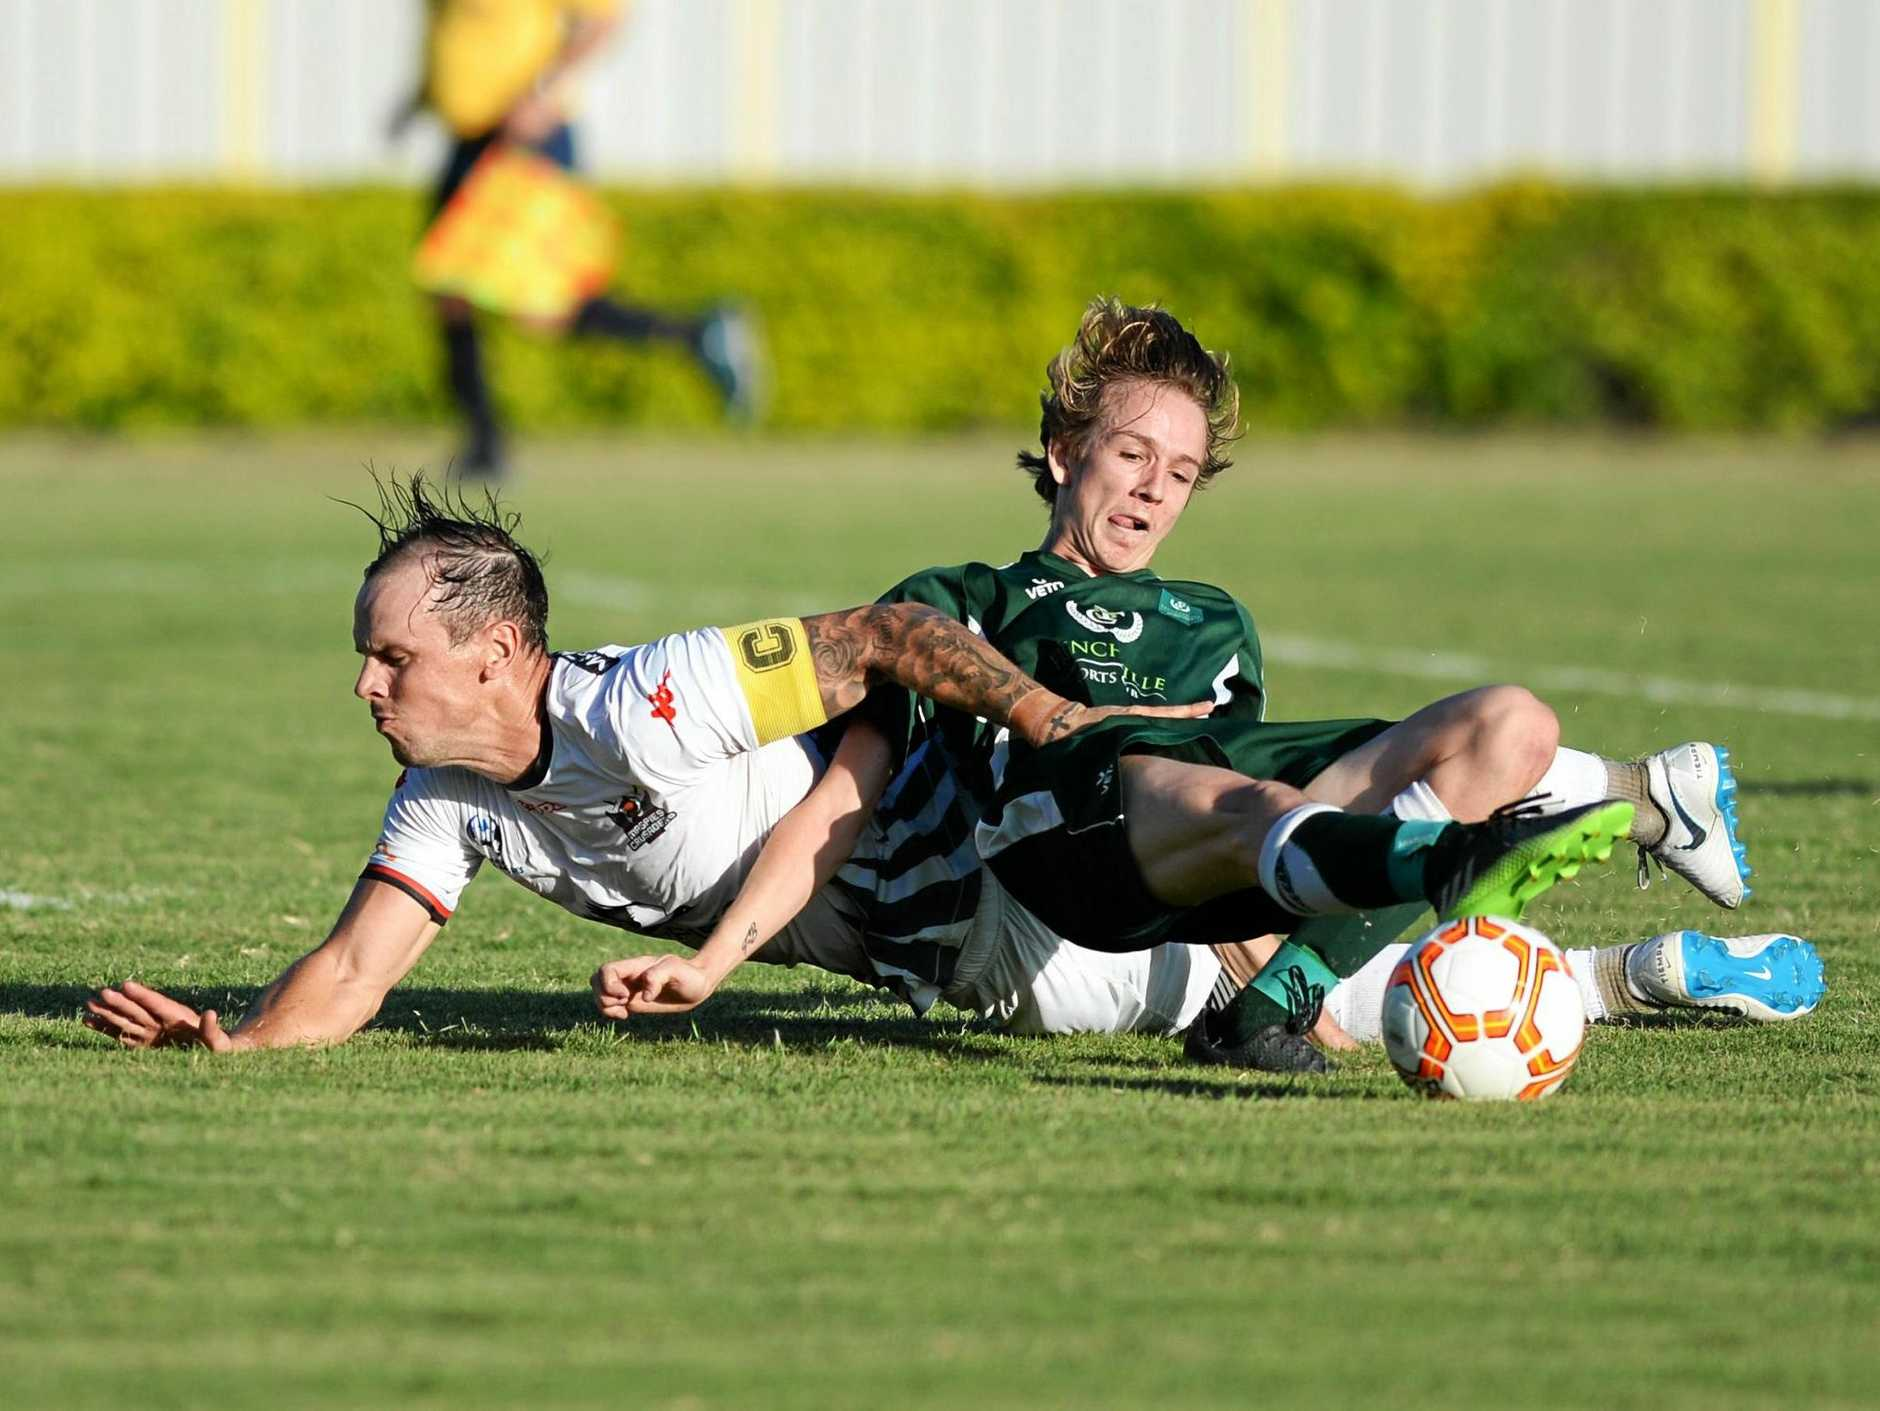 DETERMINED EFFORT: Frenchville's Sam Reynolds continues to battle for possession despite hitting the deck in the pre-season friendly against the Magpies United Crusaders at Ryan Park on Saturday.